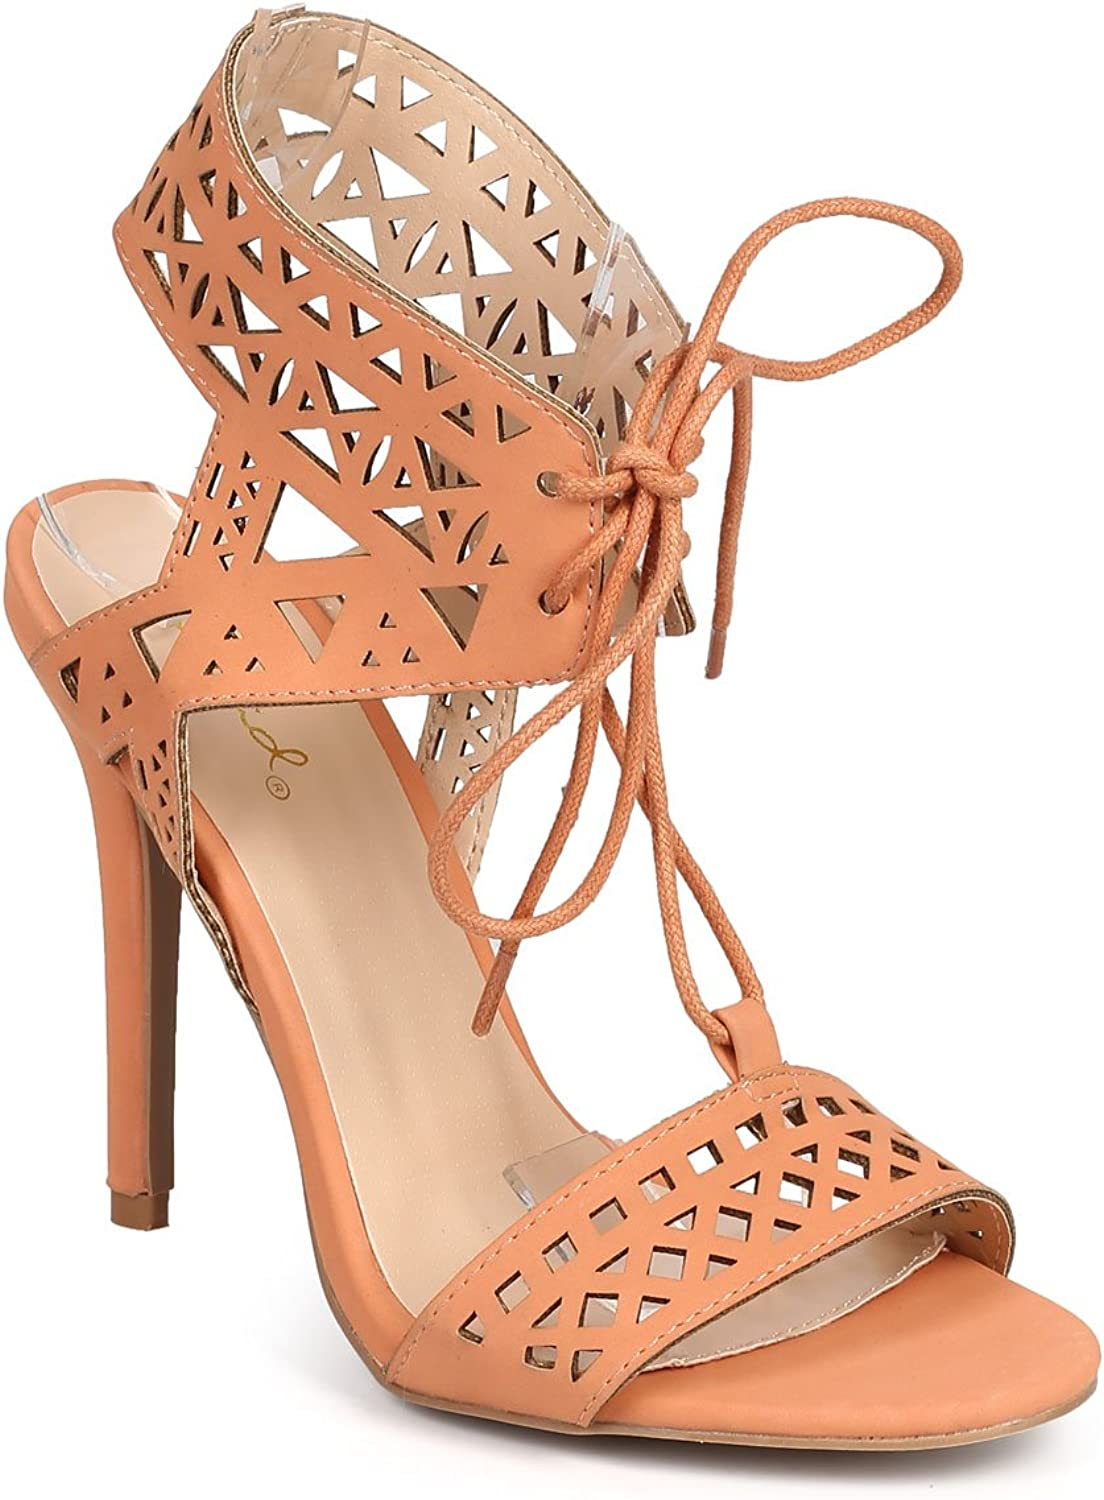 Qupid DI78 Women Tribal Open Toe Hollow Out Stencil Lace Up Stiletto Sandal - Melon